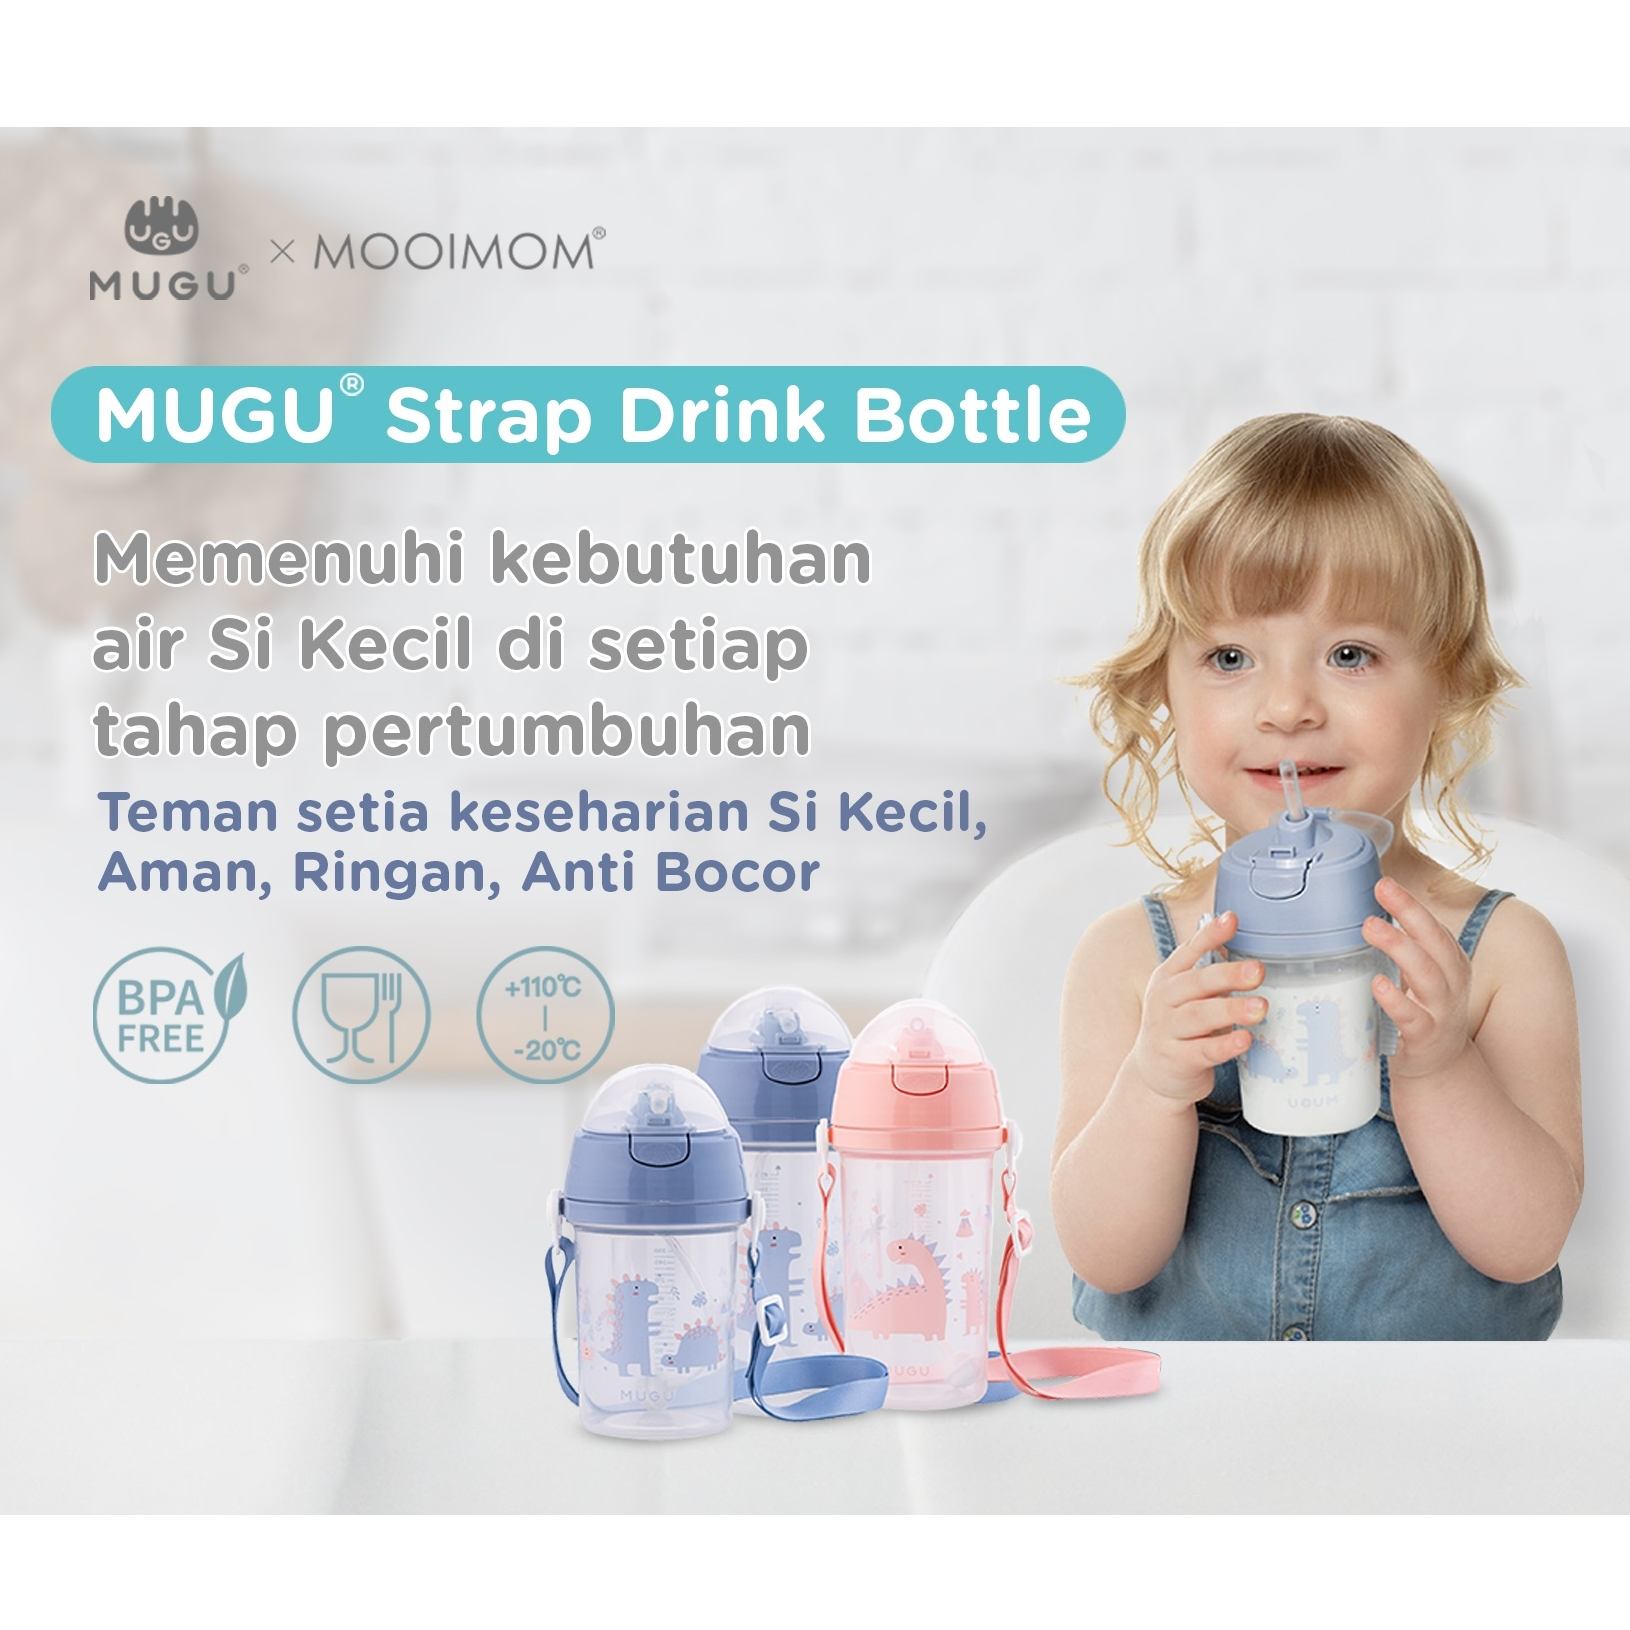 Mugu Strap Drink Bottle (1)